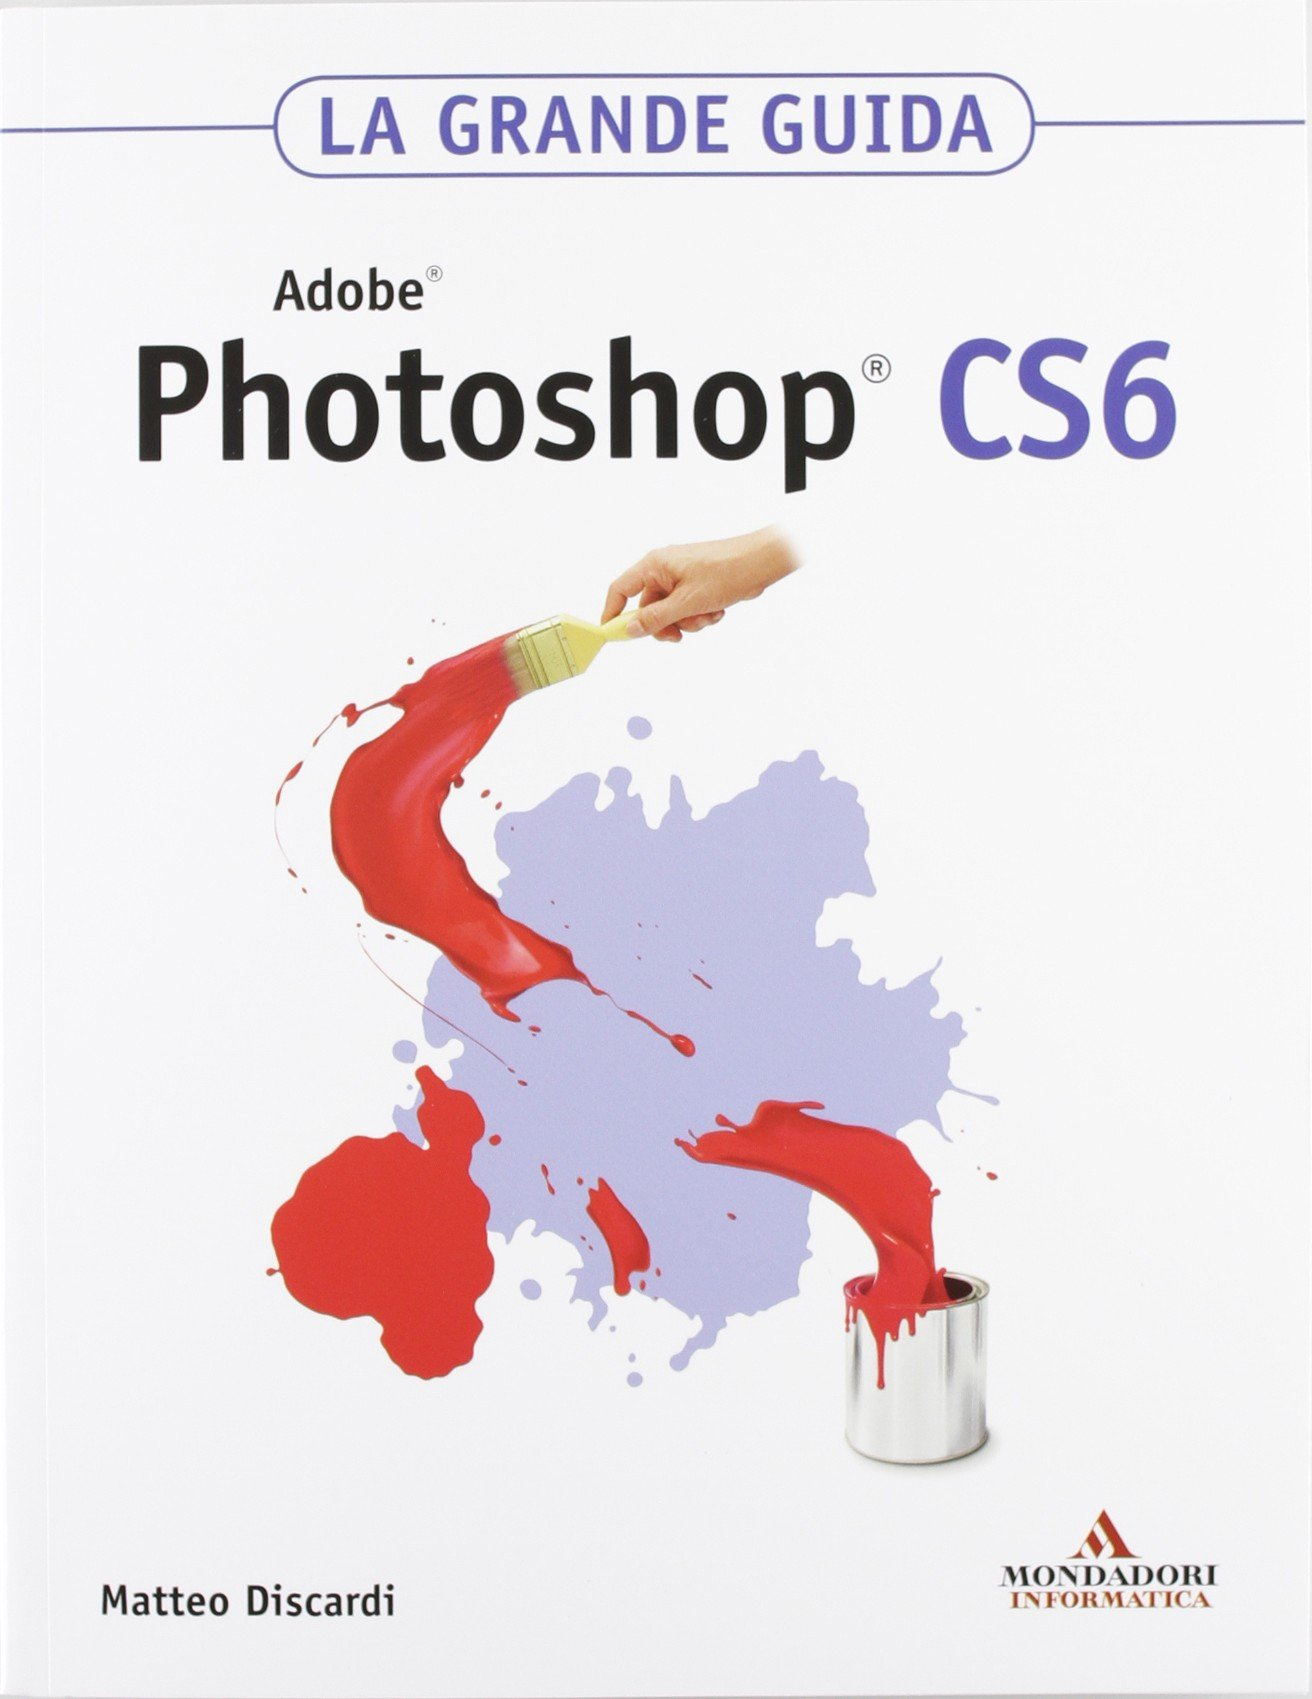 amazon it adobe photoshop cs6 la grande guida matteo discardi rh amazon it Adobe Photoshop Icon Adobe Photoshop Icon